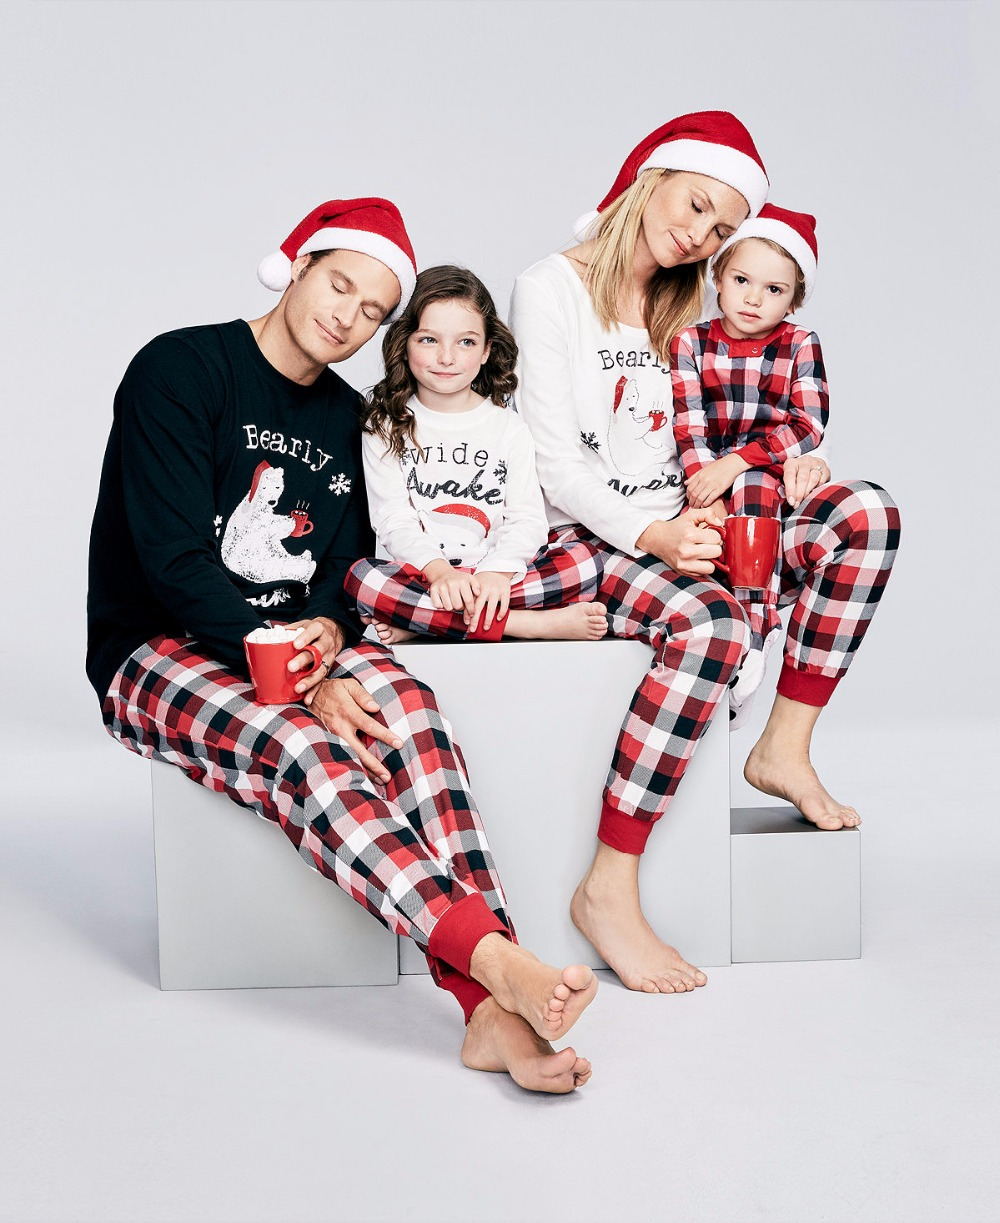 2017 New arrivals Christmas clothing bear cartoon print black white long sleeve top+pants family matching christmas pajamas set